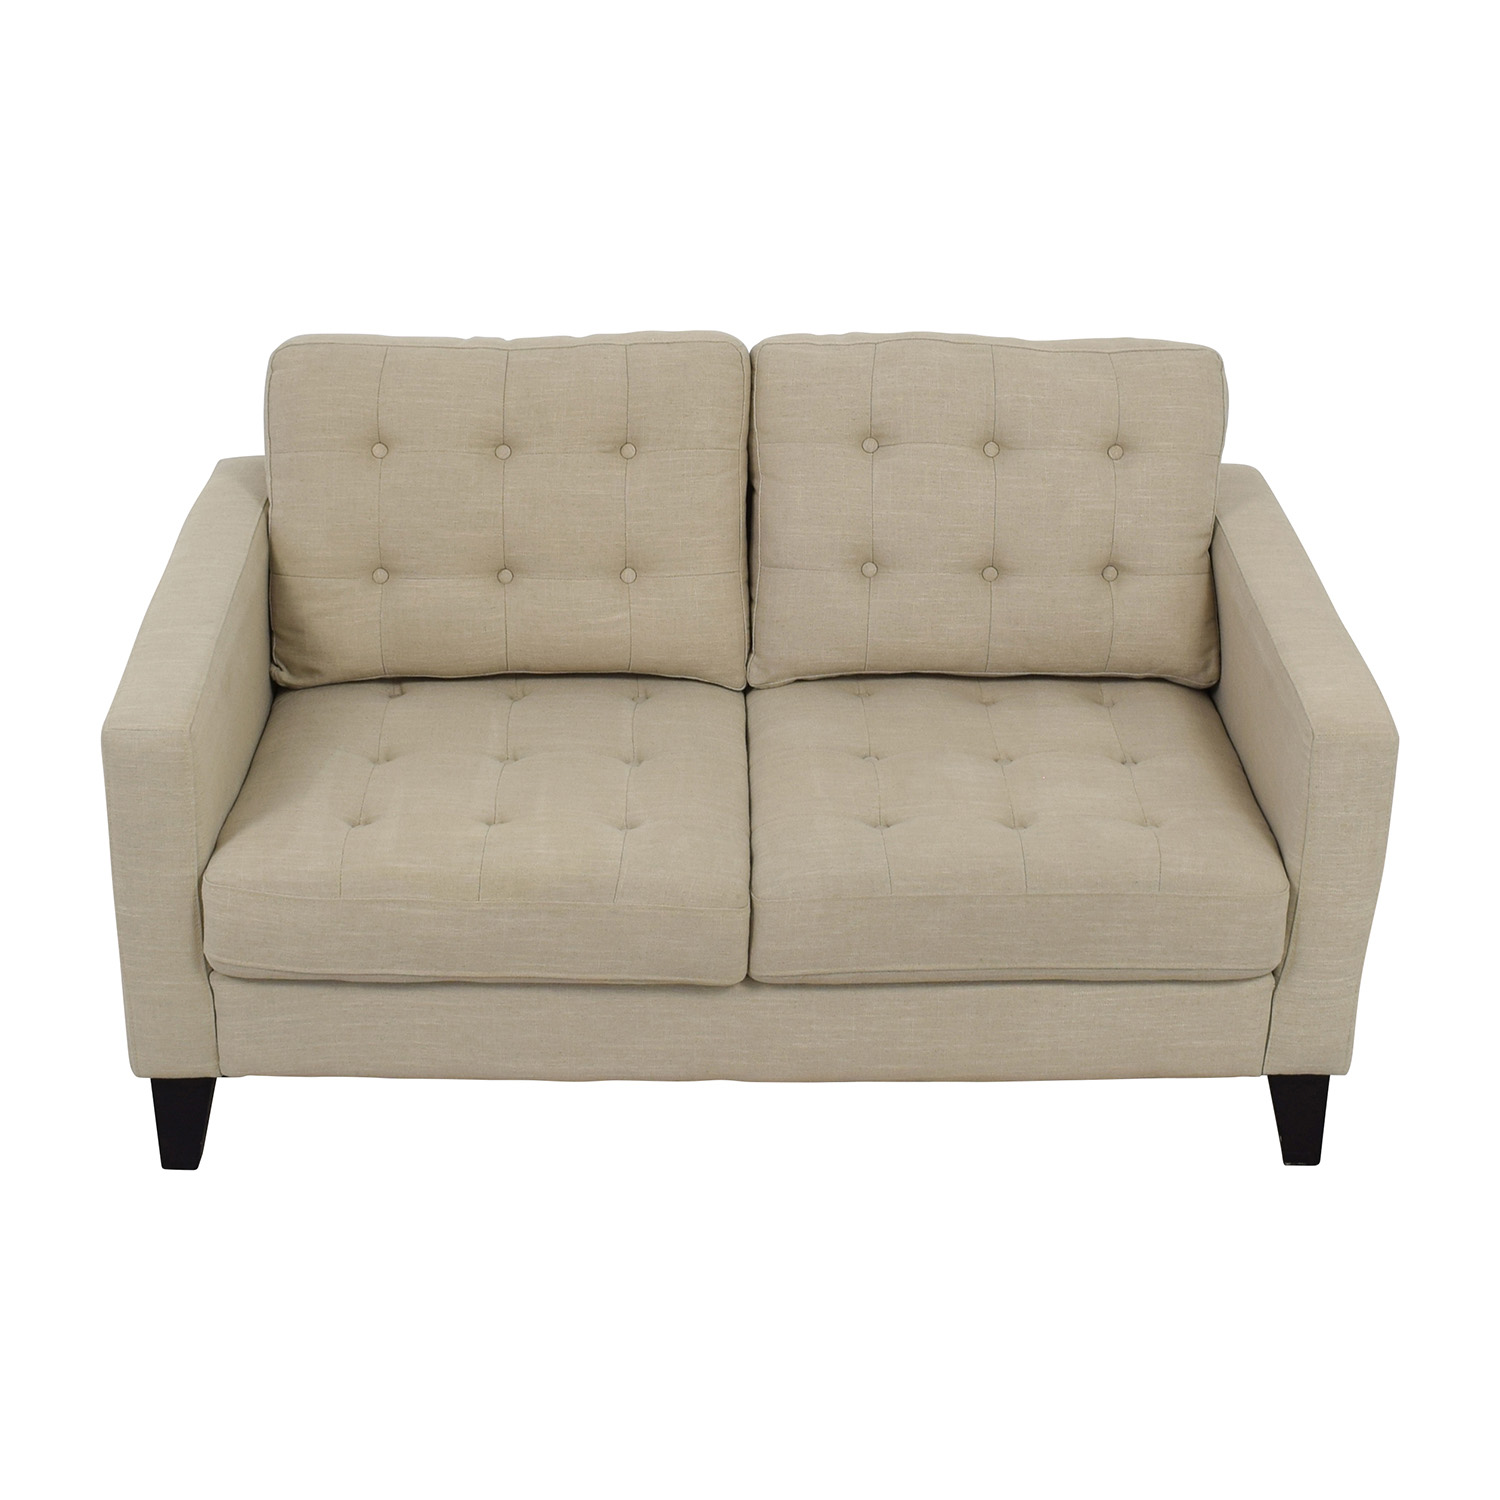 shop Pier 1 Imports Putty Tan Tufted Loveseat Pier 1 Imports Classic Sofas